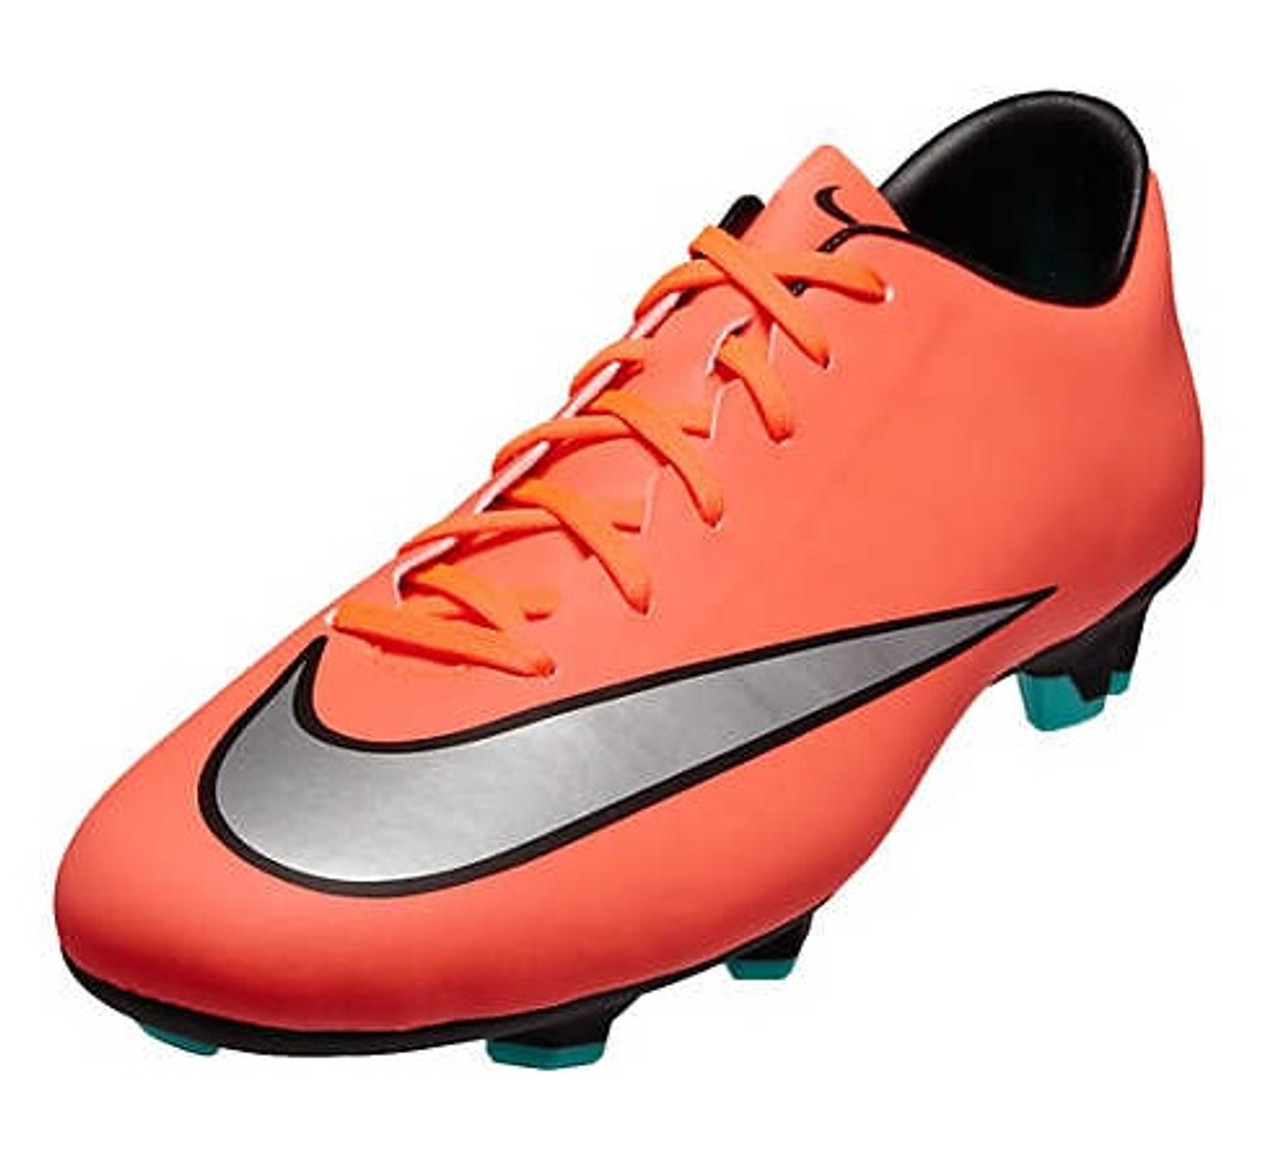 nike mercurial victory v review